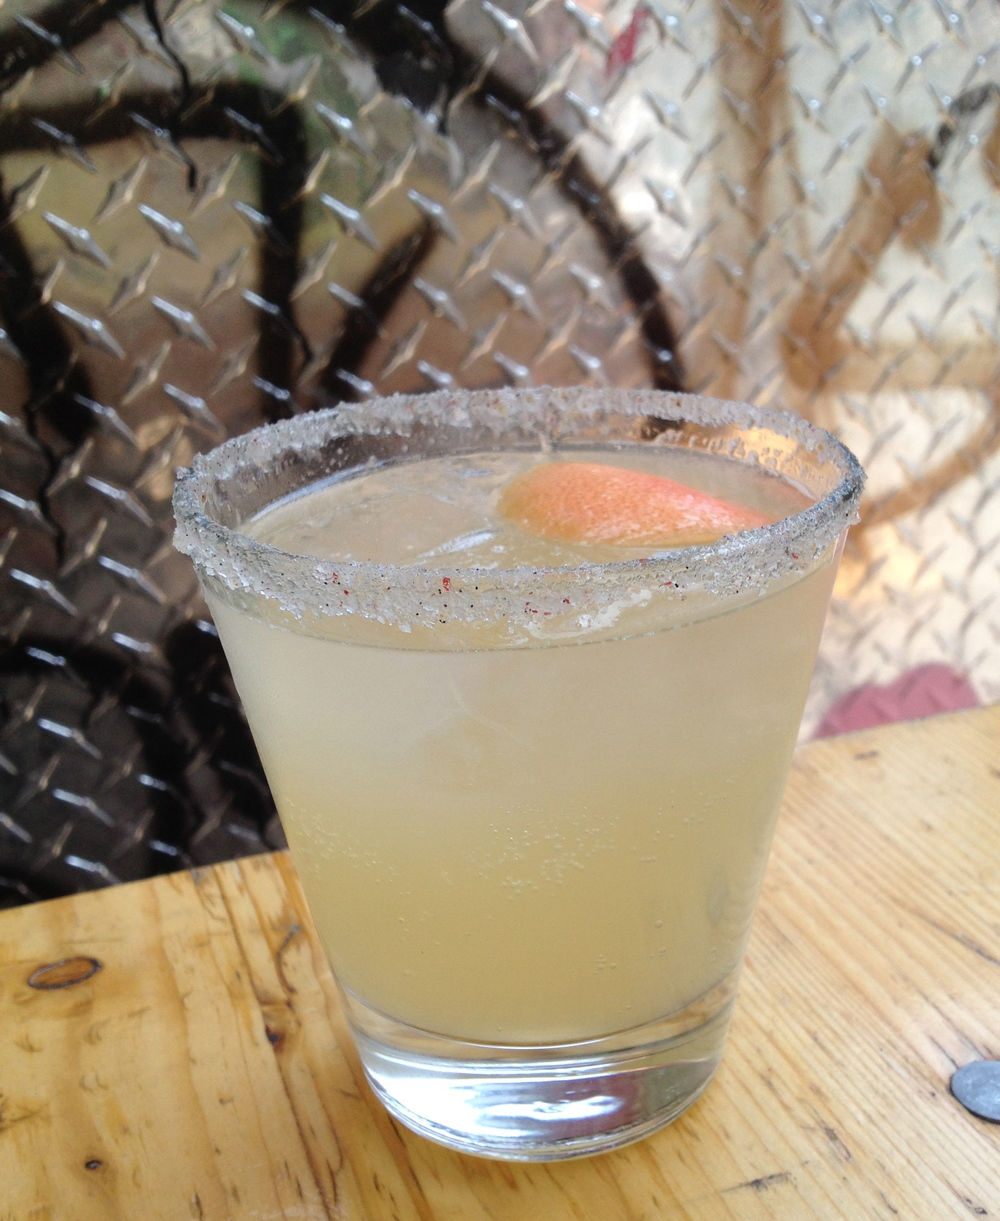 LA PALOMA AT MISSION CANTINA NYC